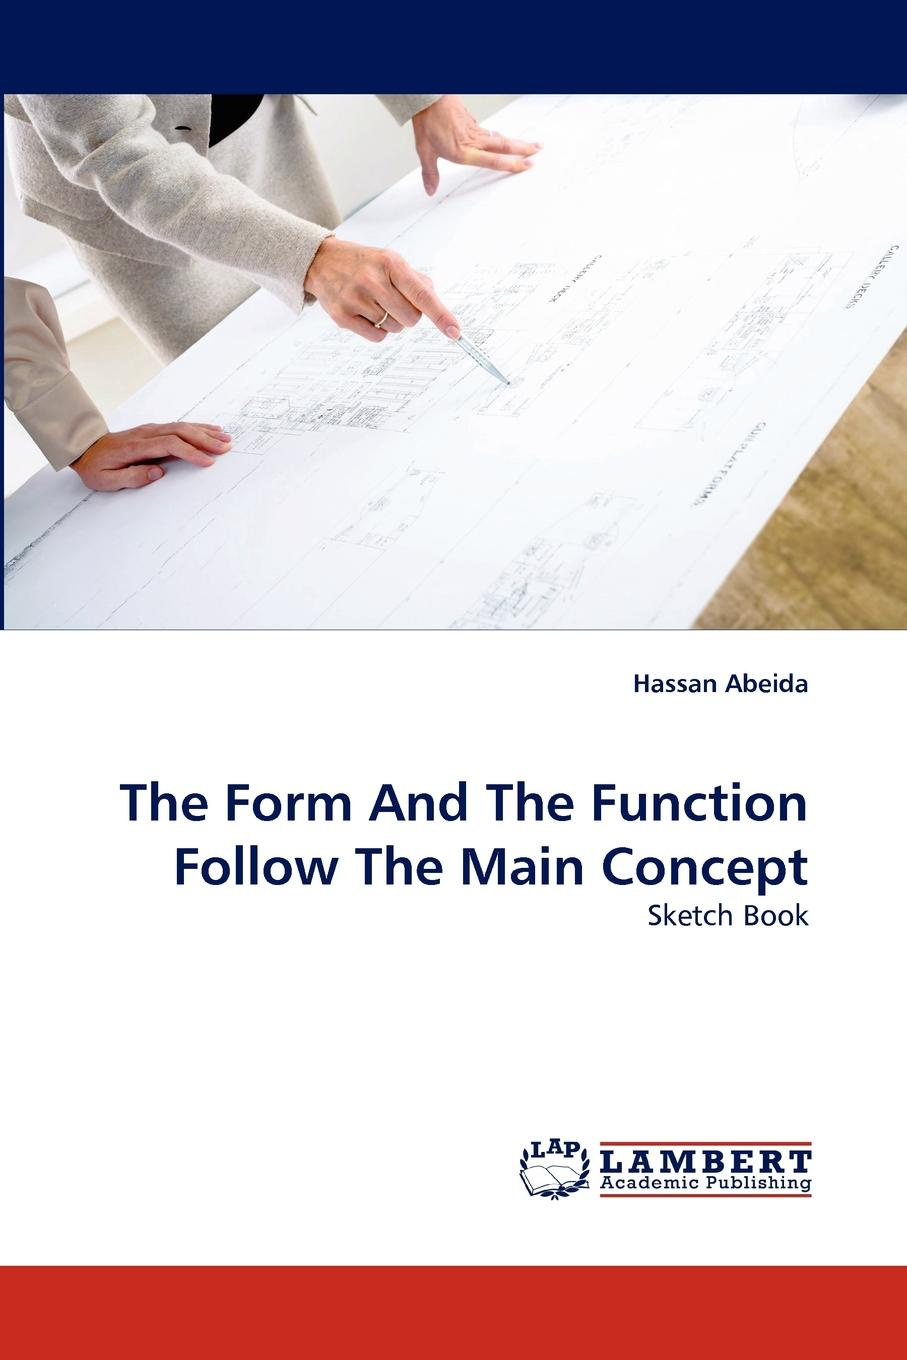 Hassan Abeida The Form And The Function Follow The Main Concept